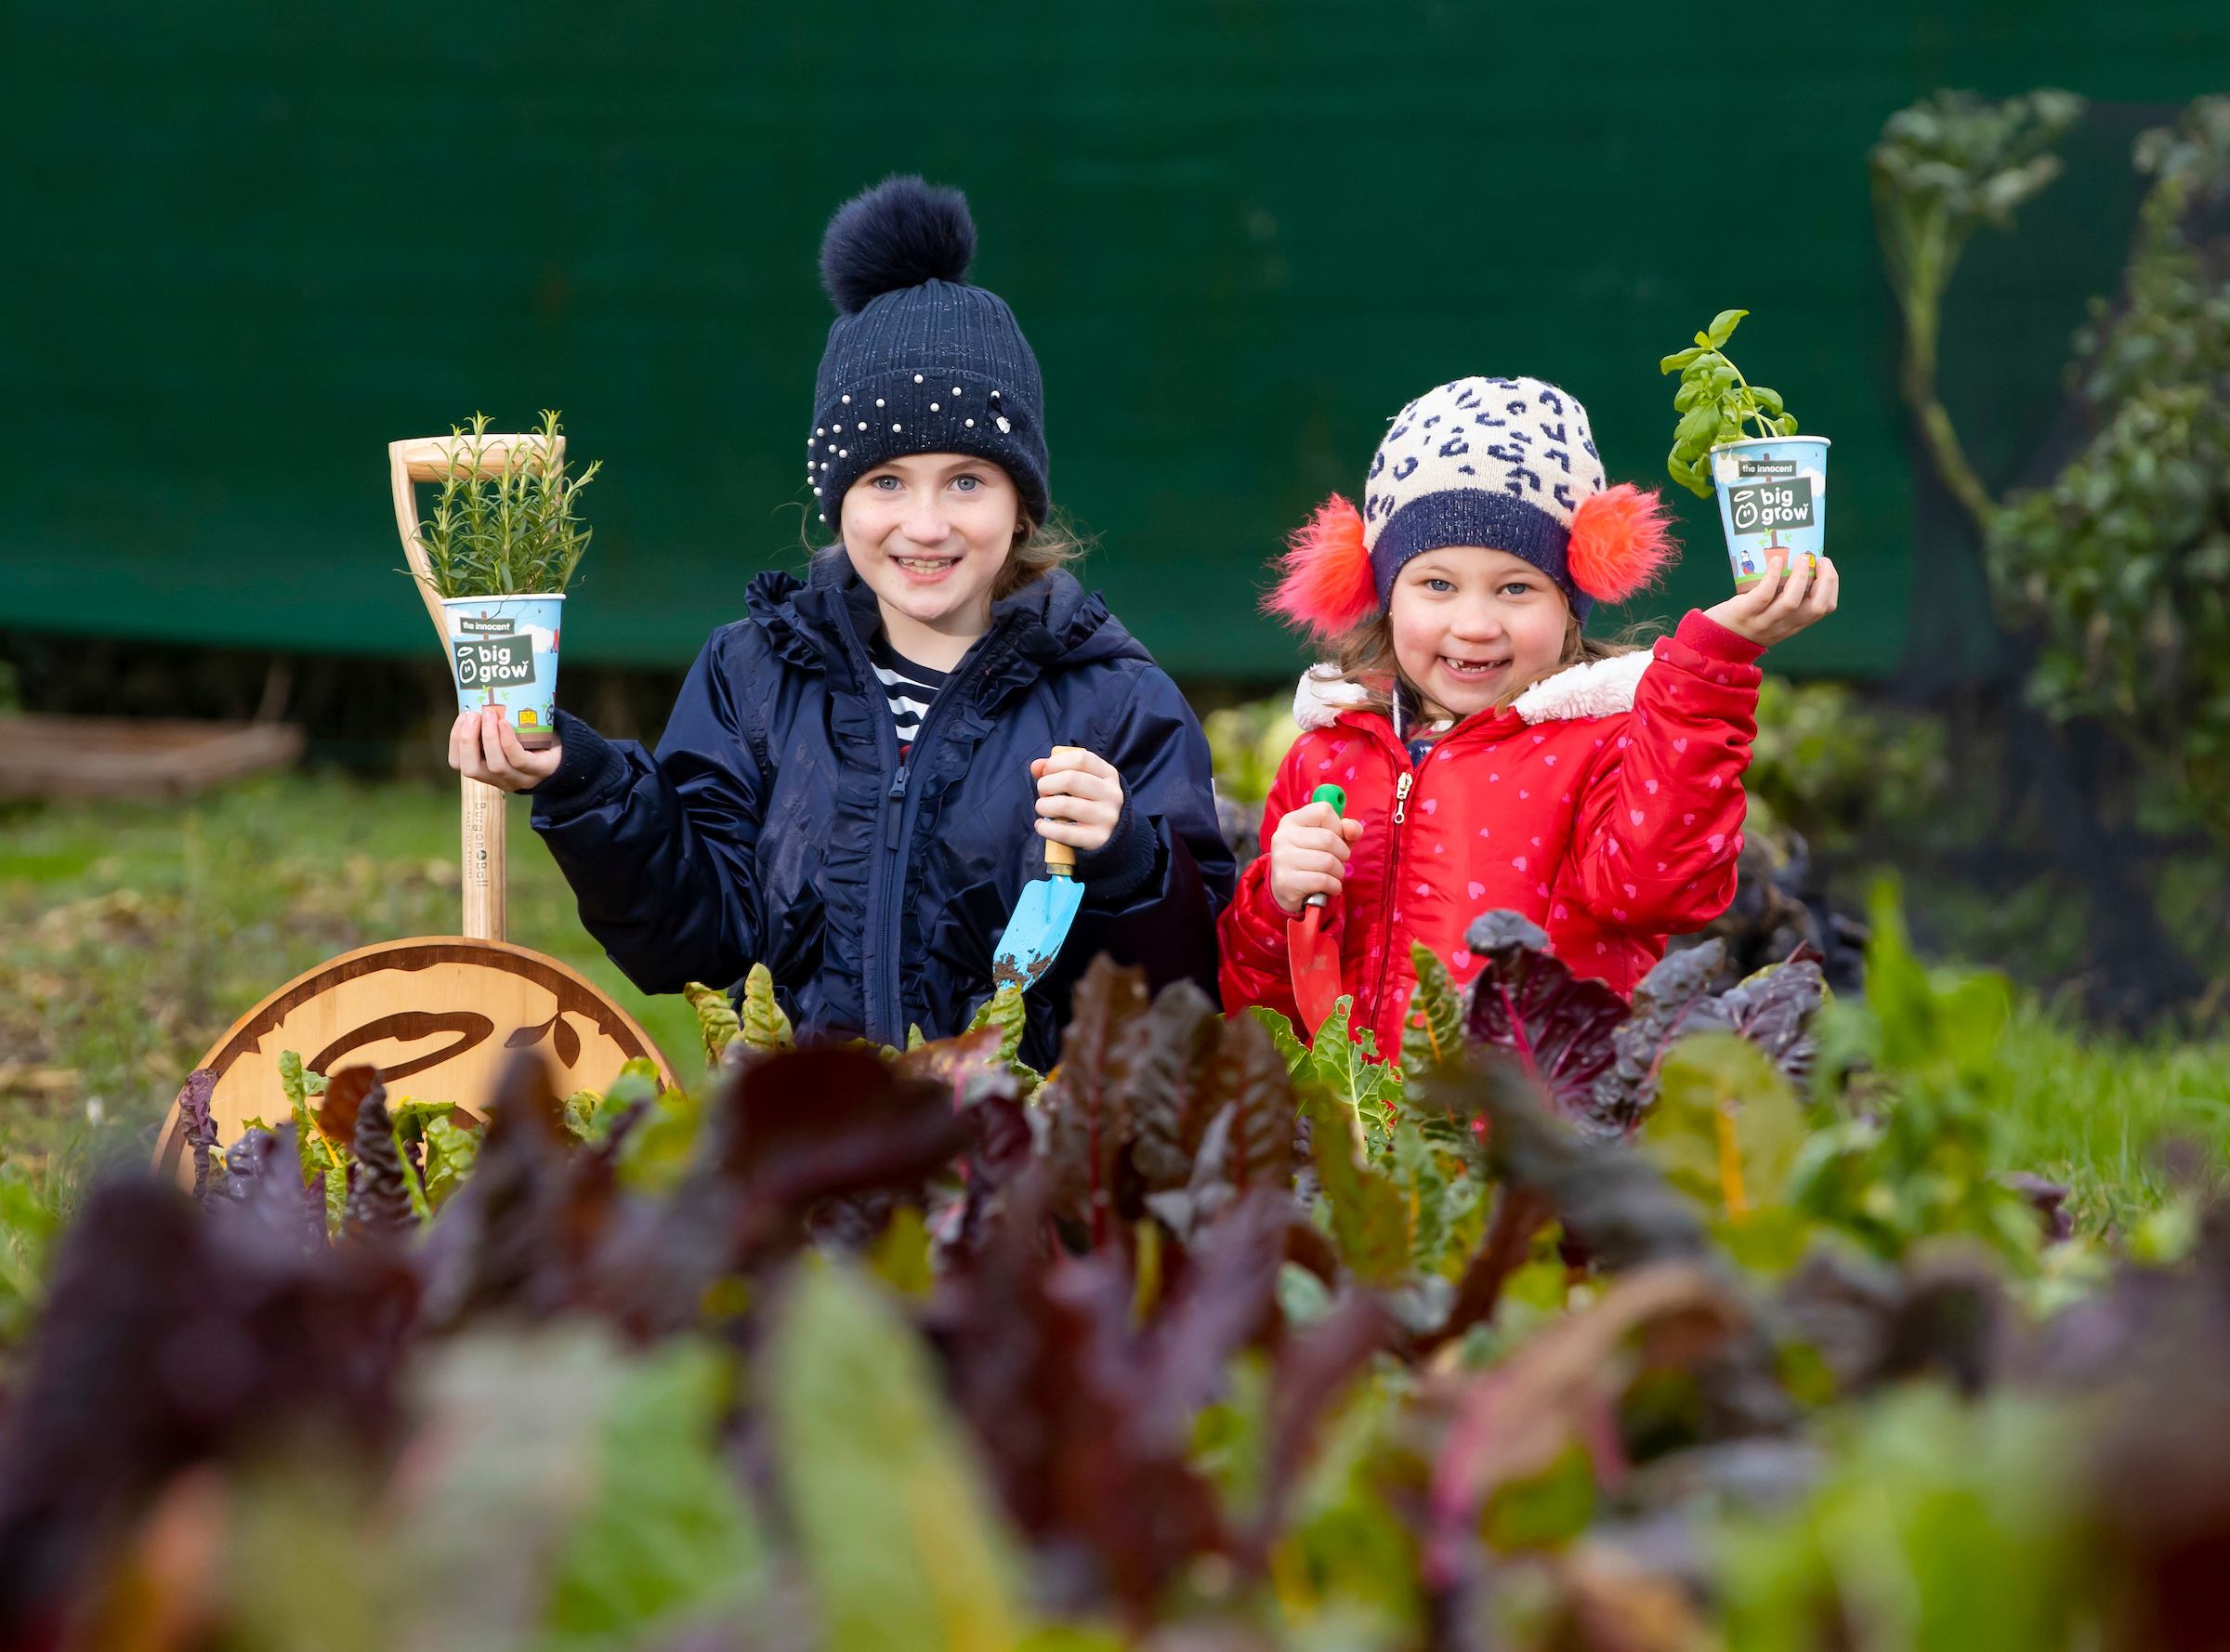 Registration for free Grow-Kits from The Big Grow 2021 is now open for Primary School Teachers